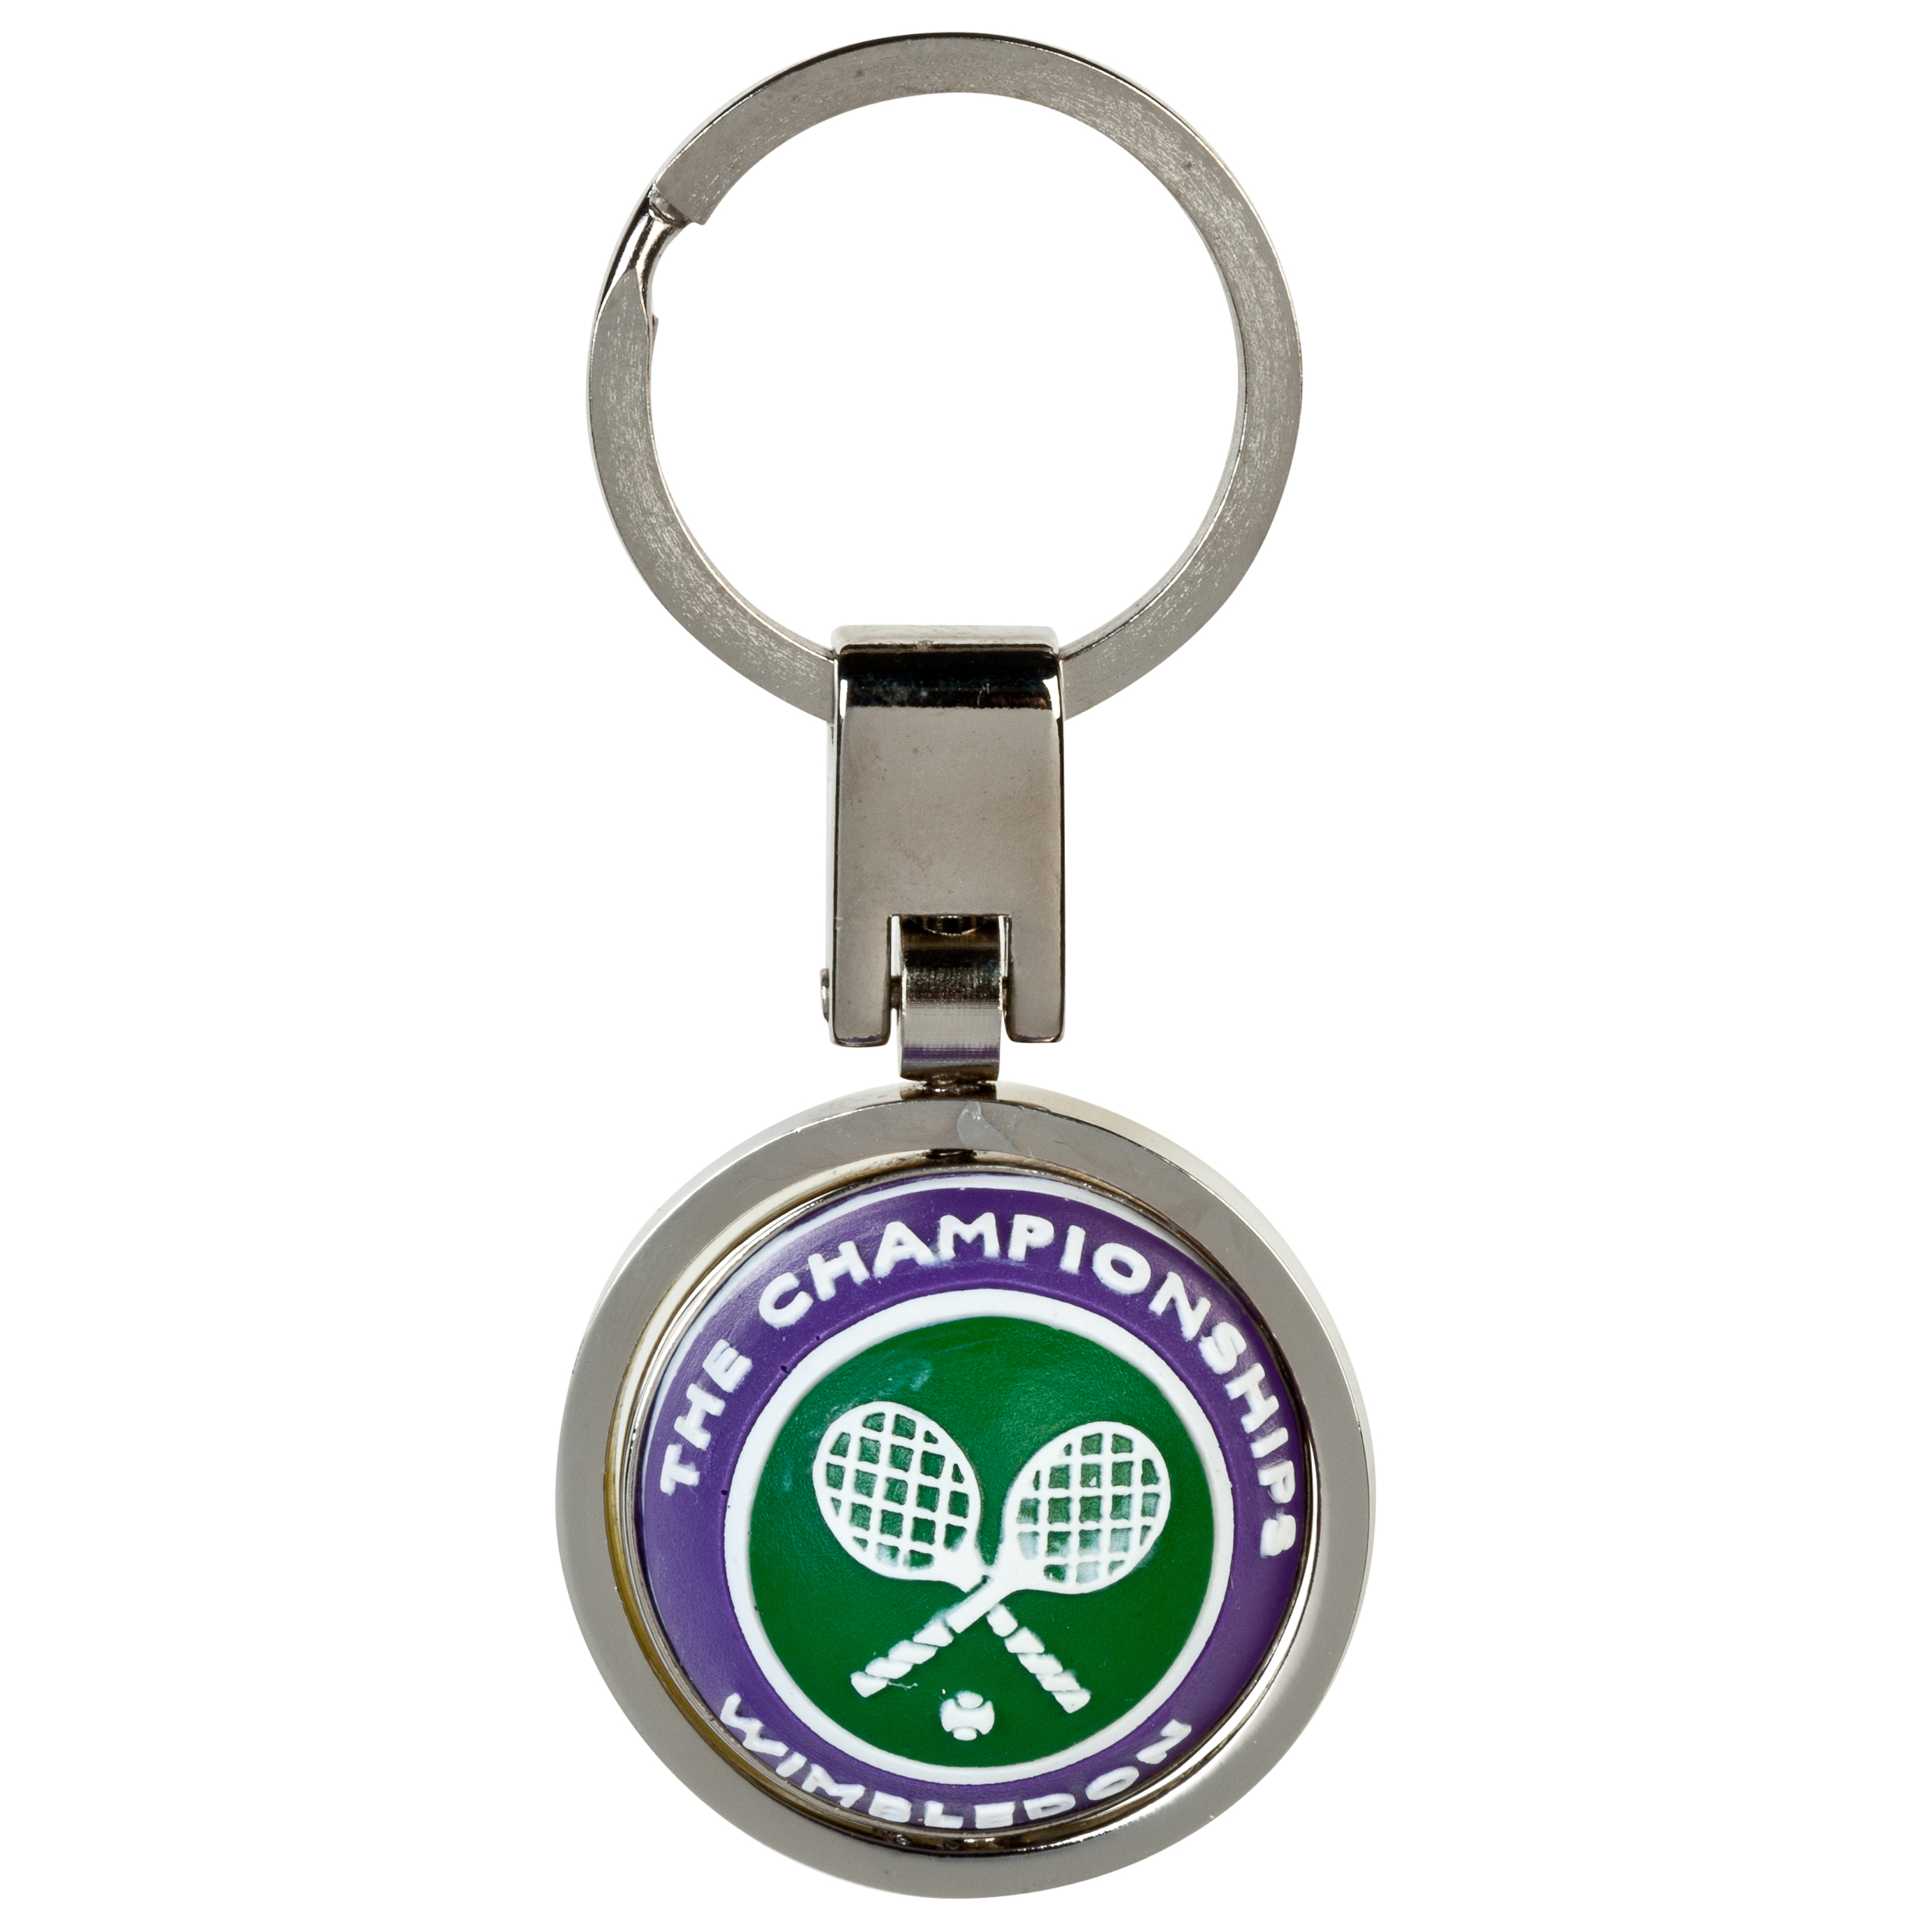 Wimbledon Spinningball Keyring Yellow